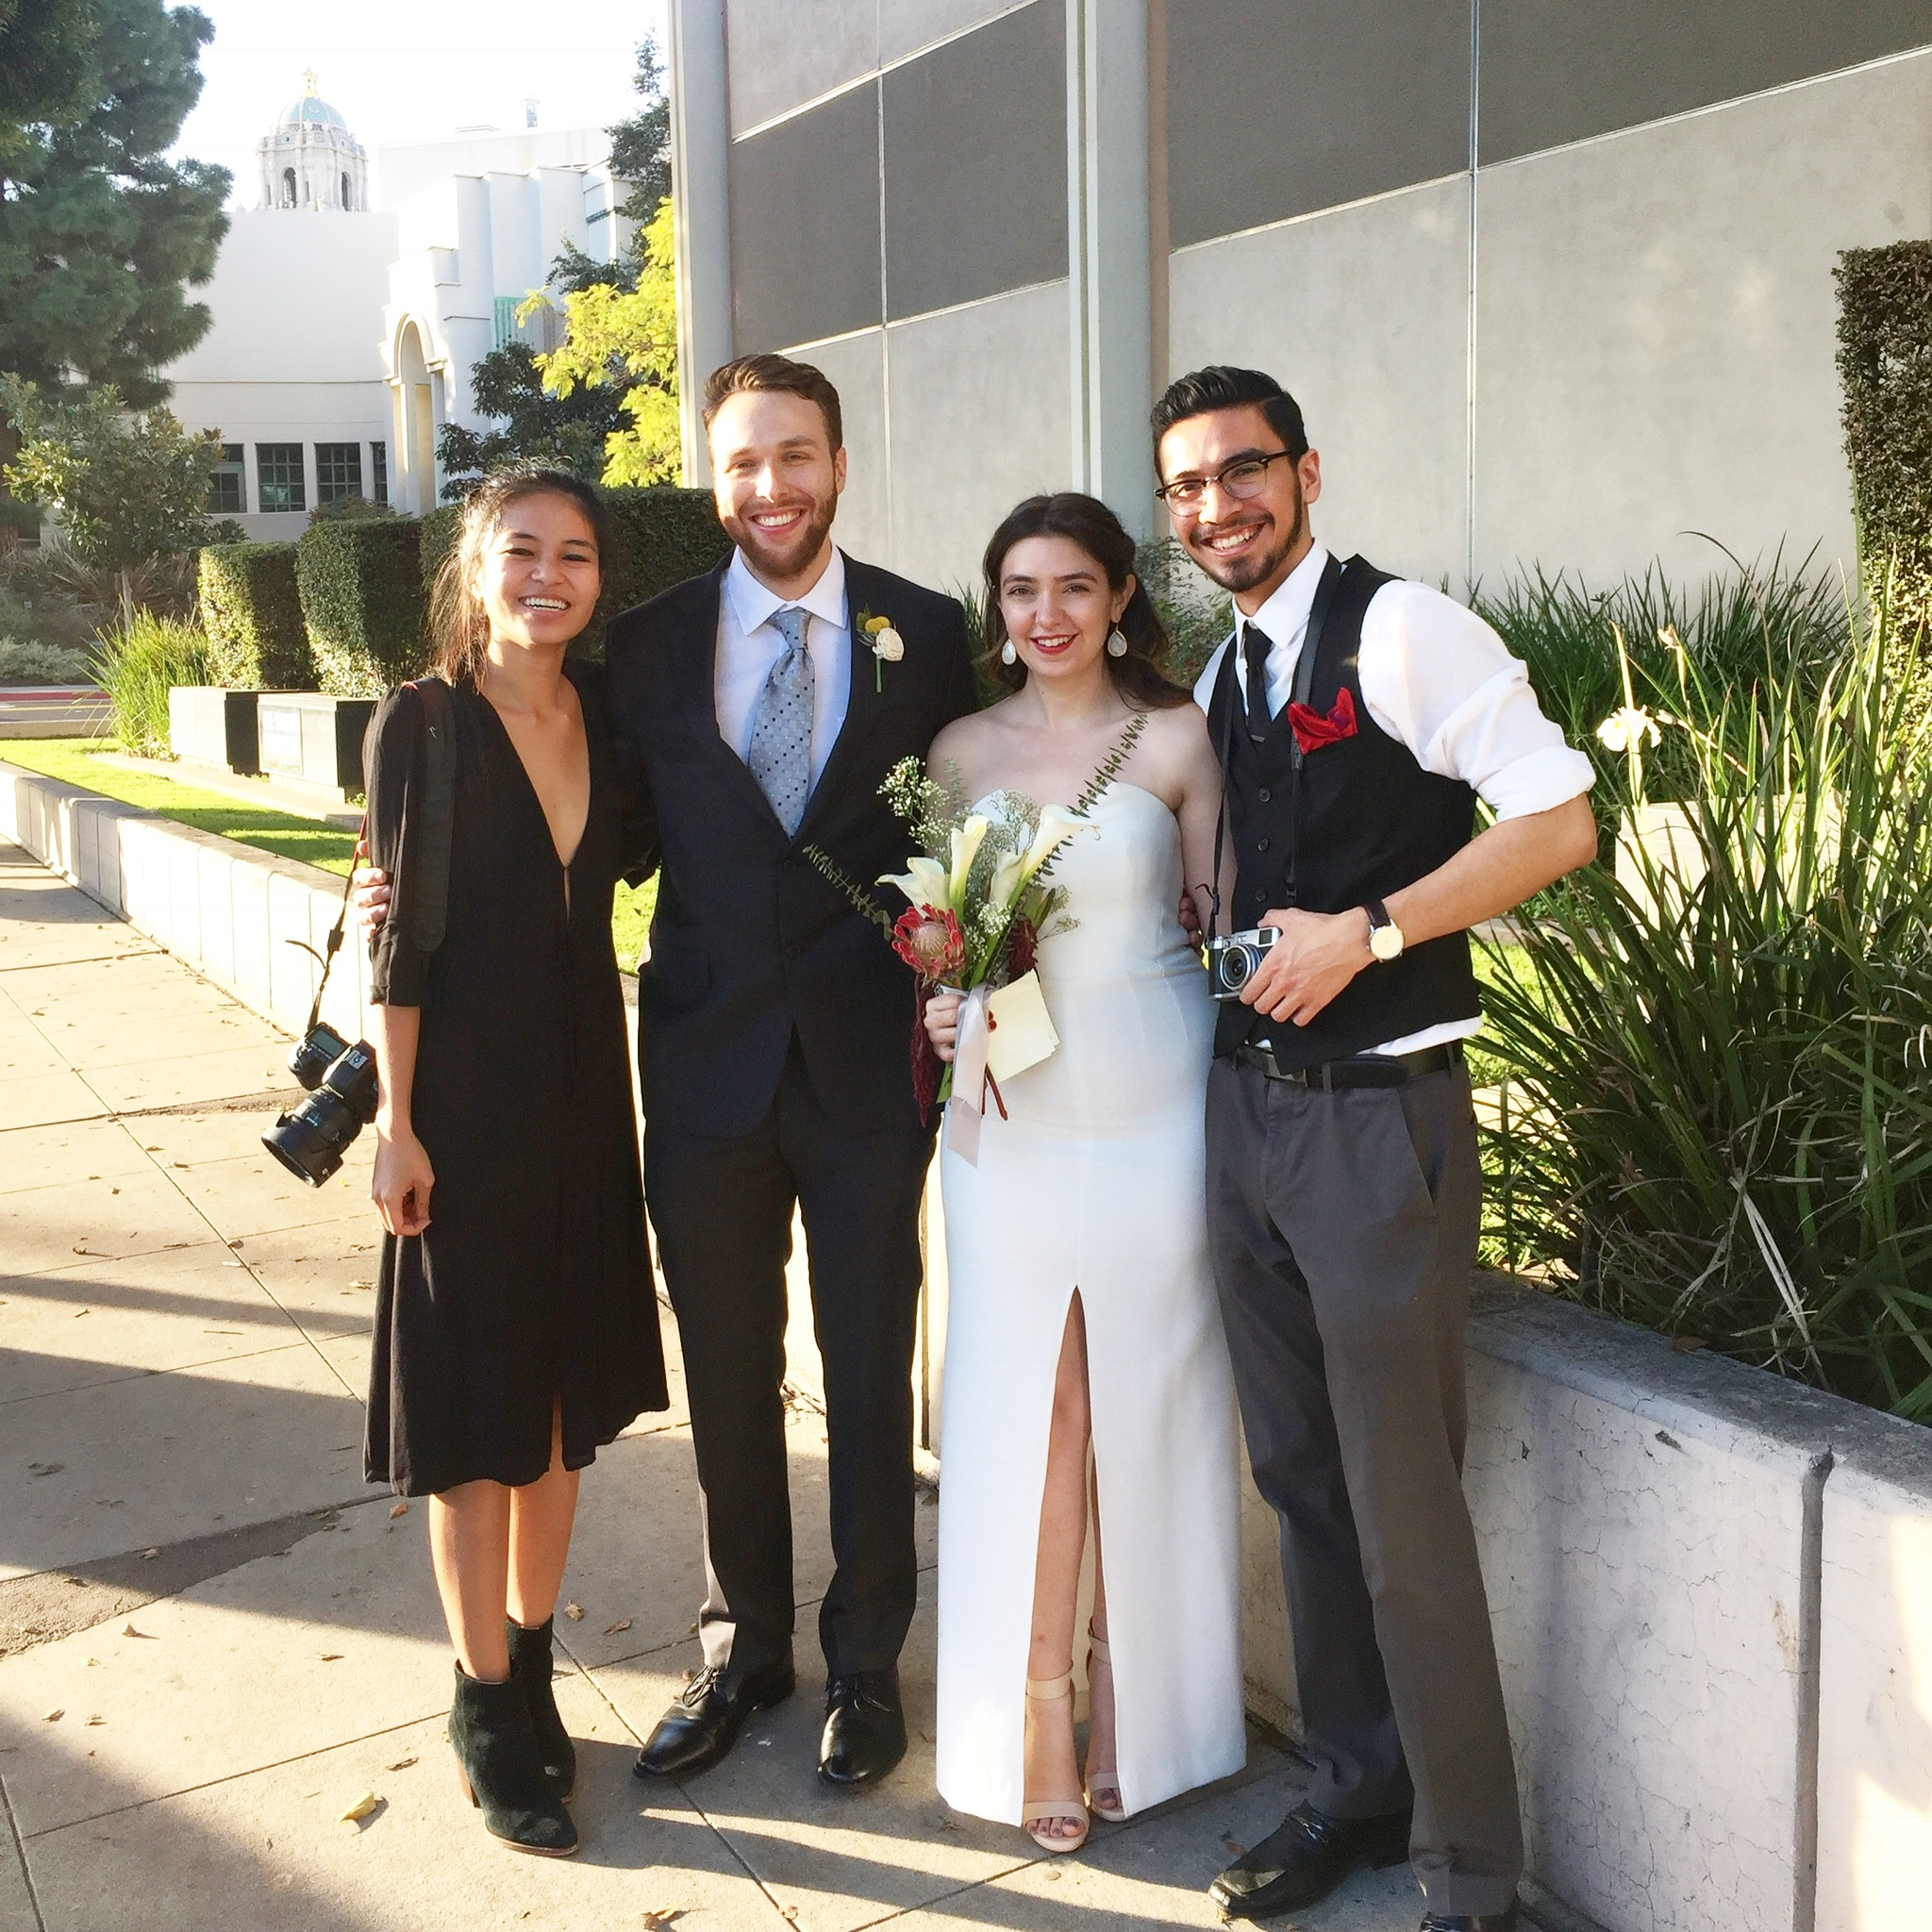 Kristine and Brandon were also apart of our wedding